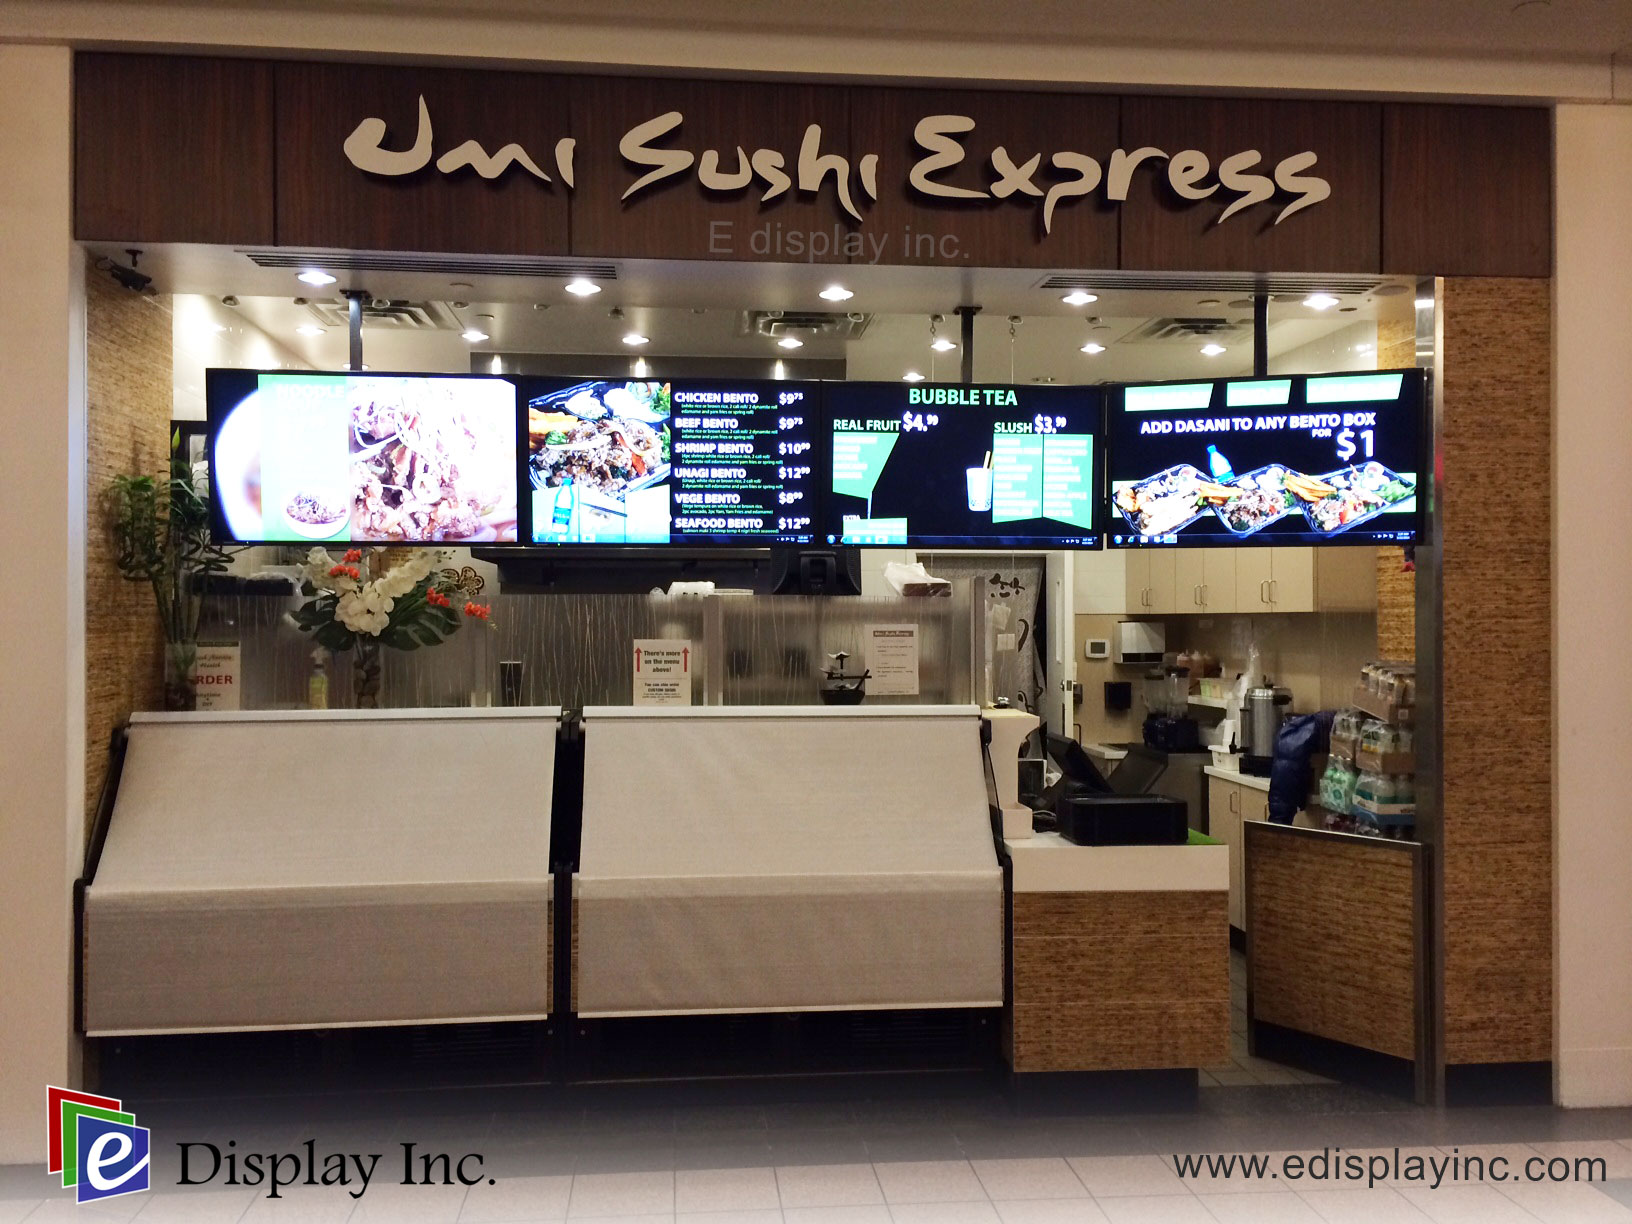 E Display Deploys Digital Menu Boards at Umi Sushi Express in Park Place Mall in Lethbridge Alberta.